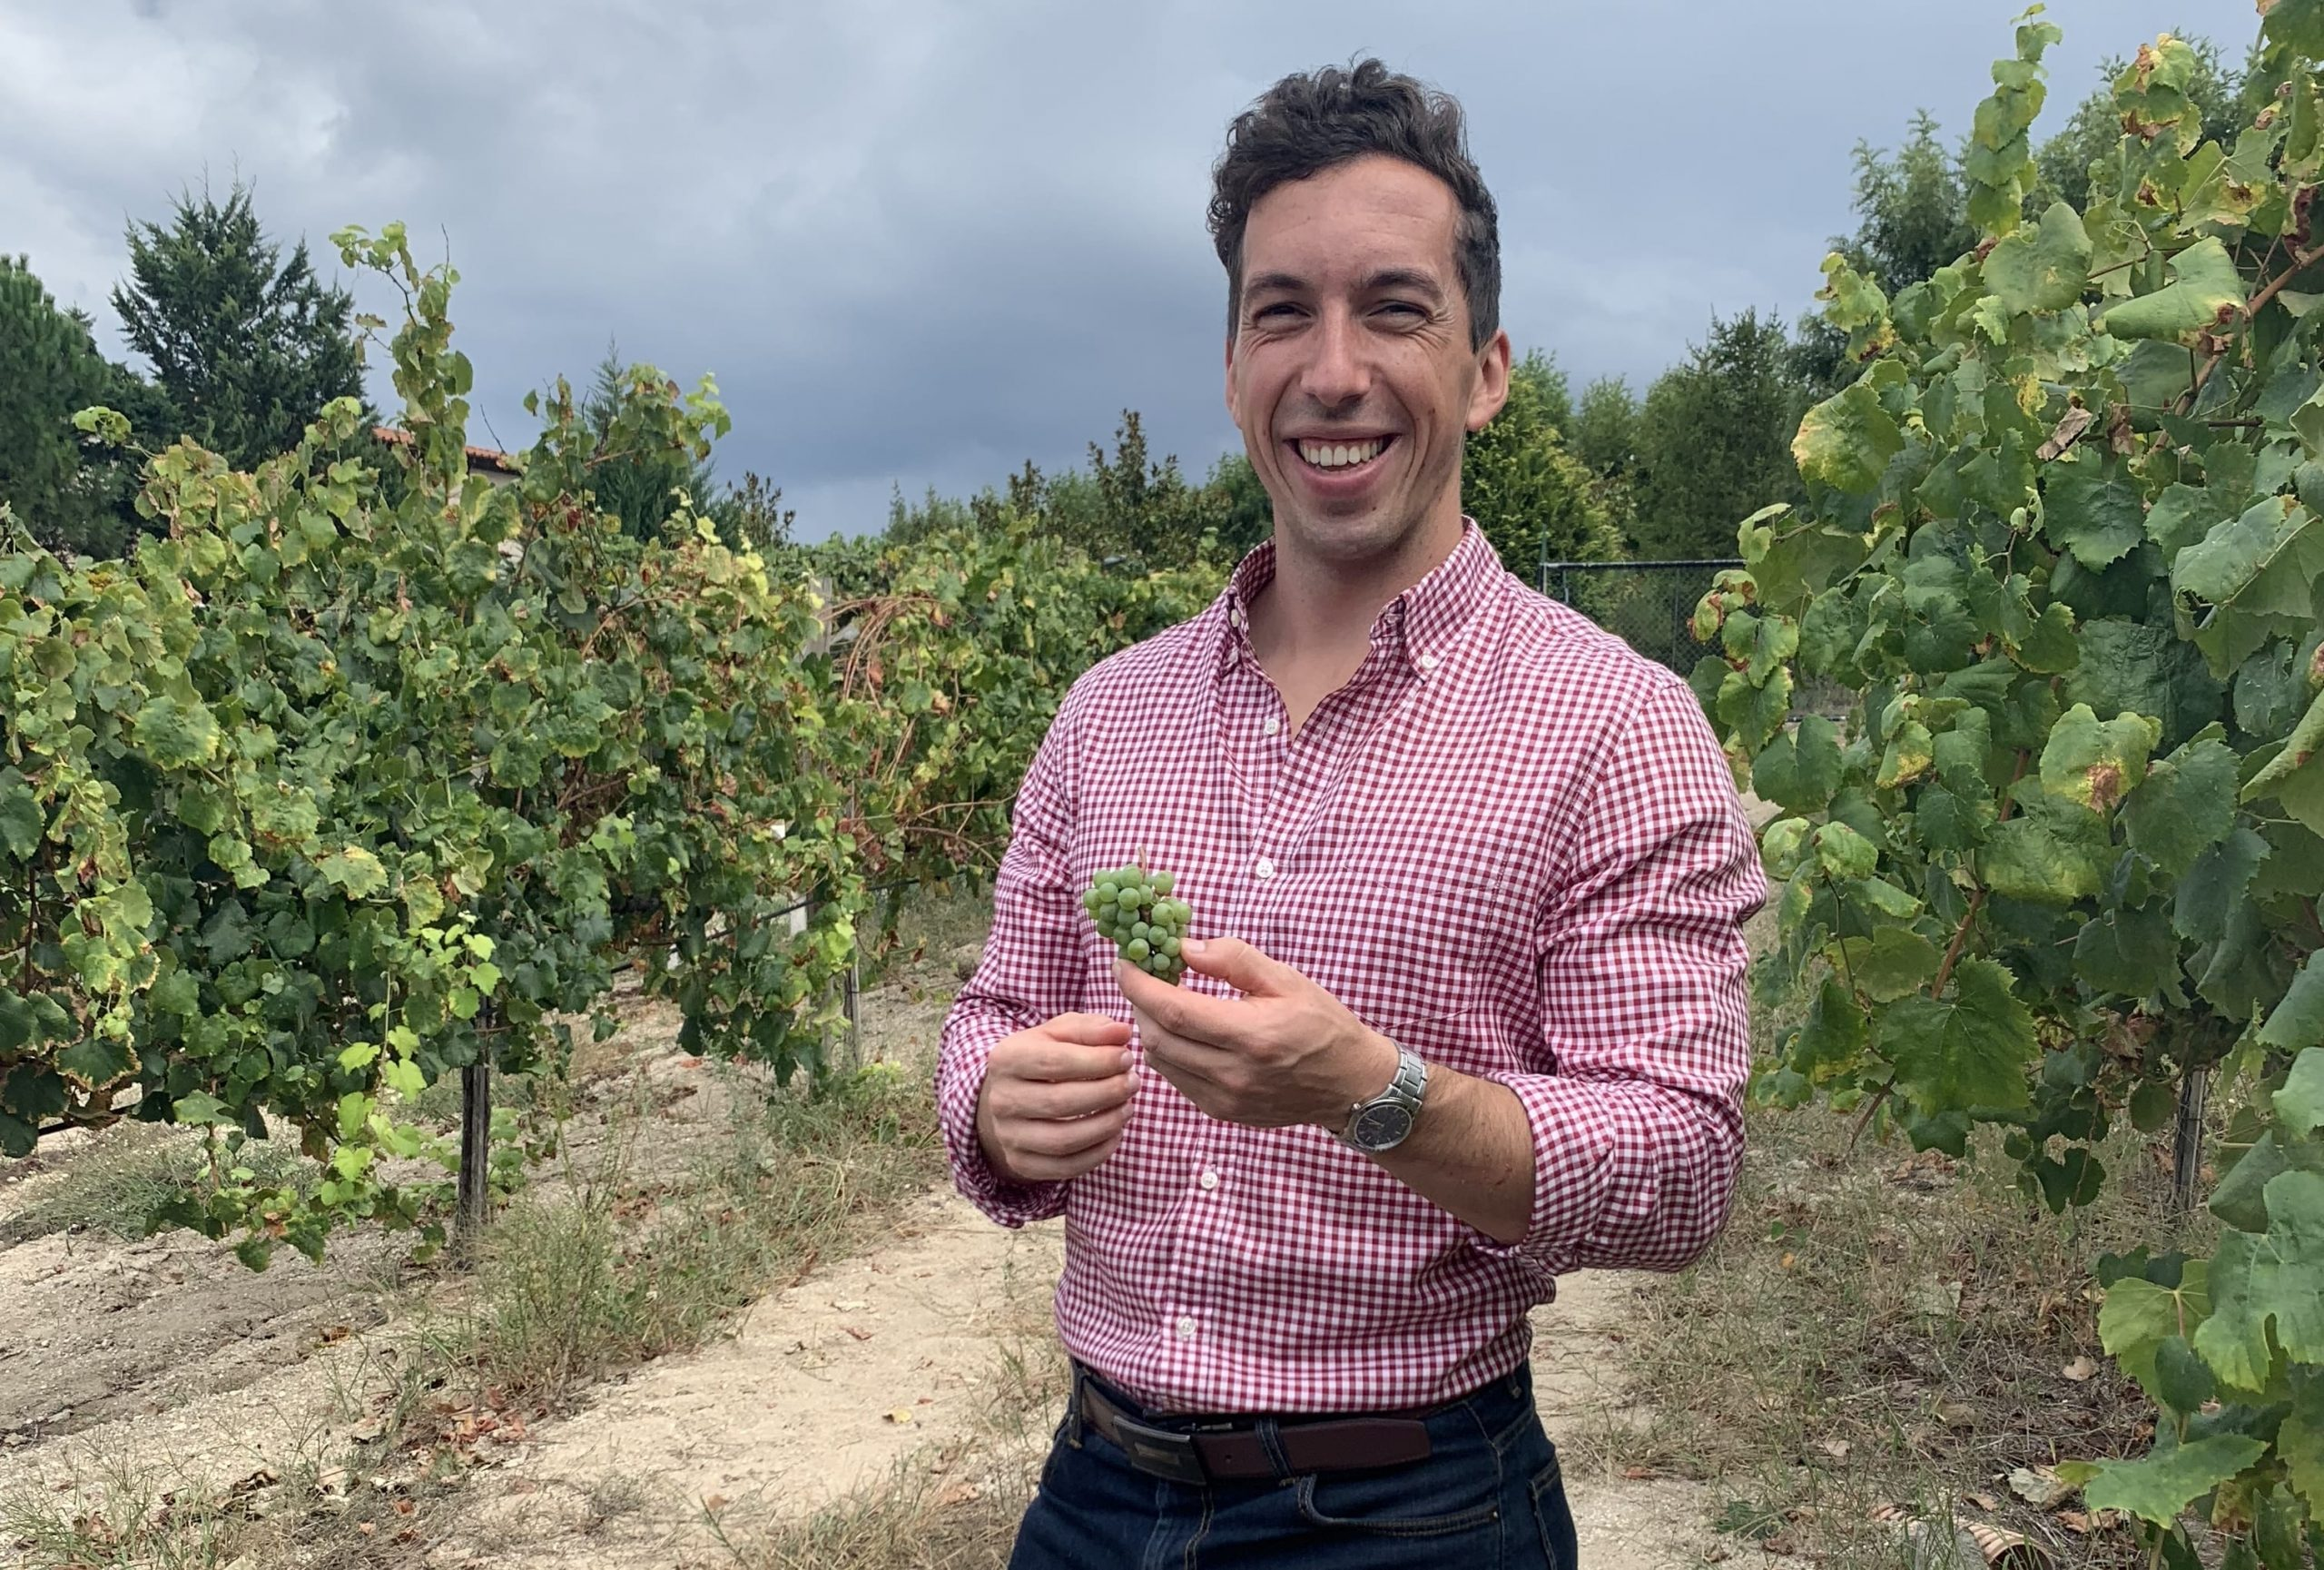 Tiago Soares - Wine Producer - Portrait at the Vineyard